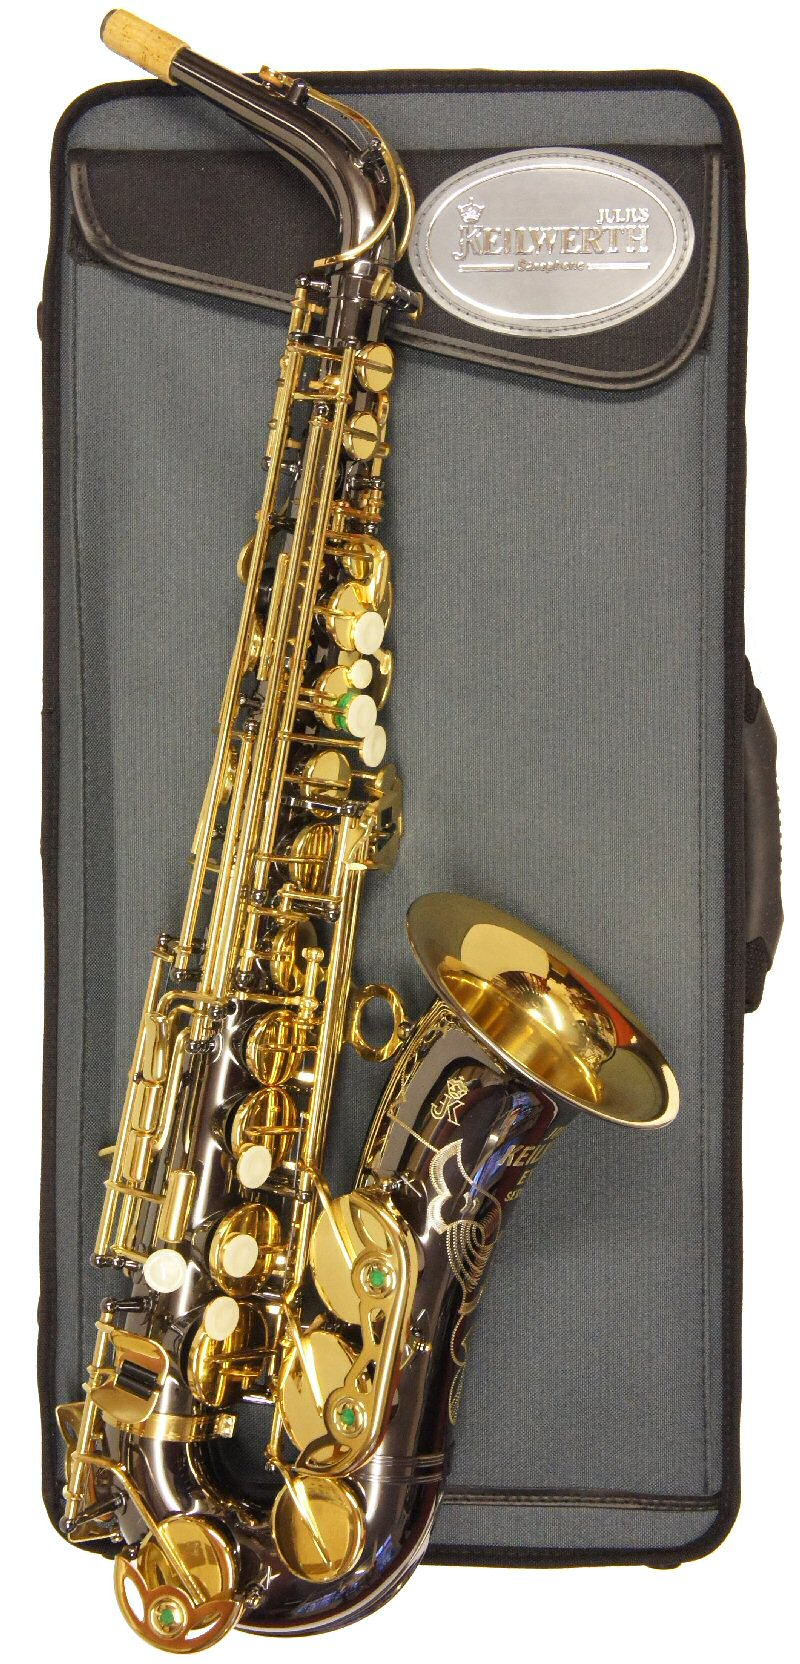 Ex-Demo Keilwerth EX90 Black Nickel Alto Sax